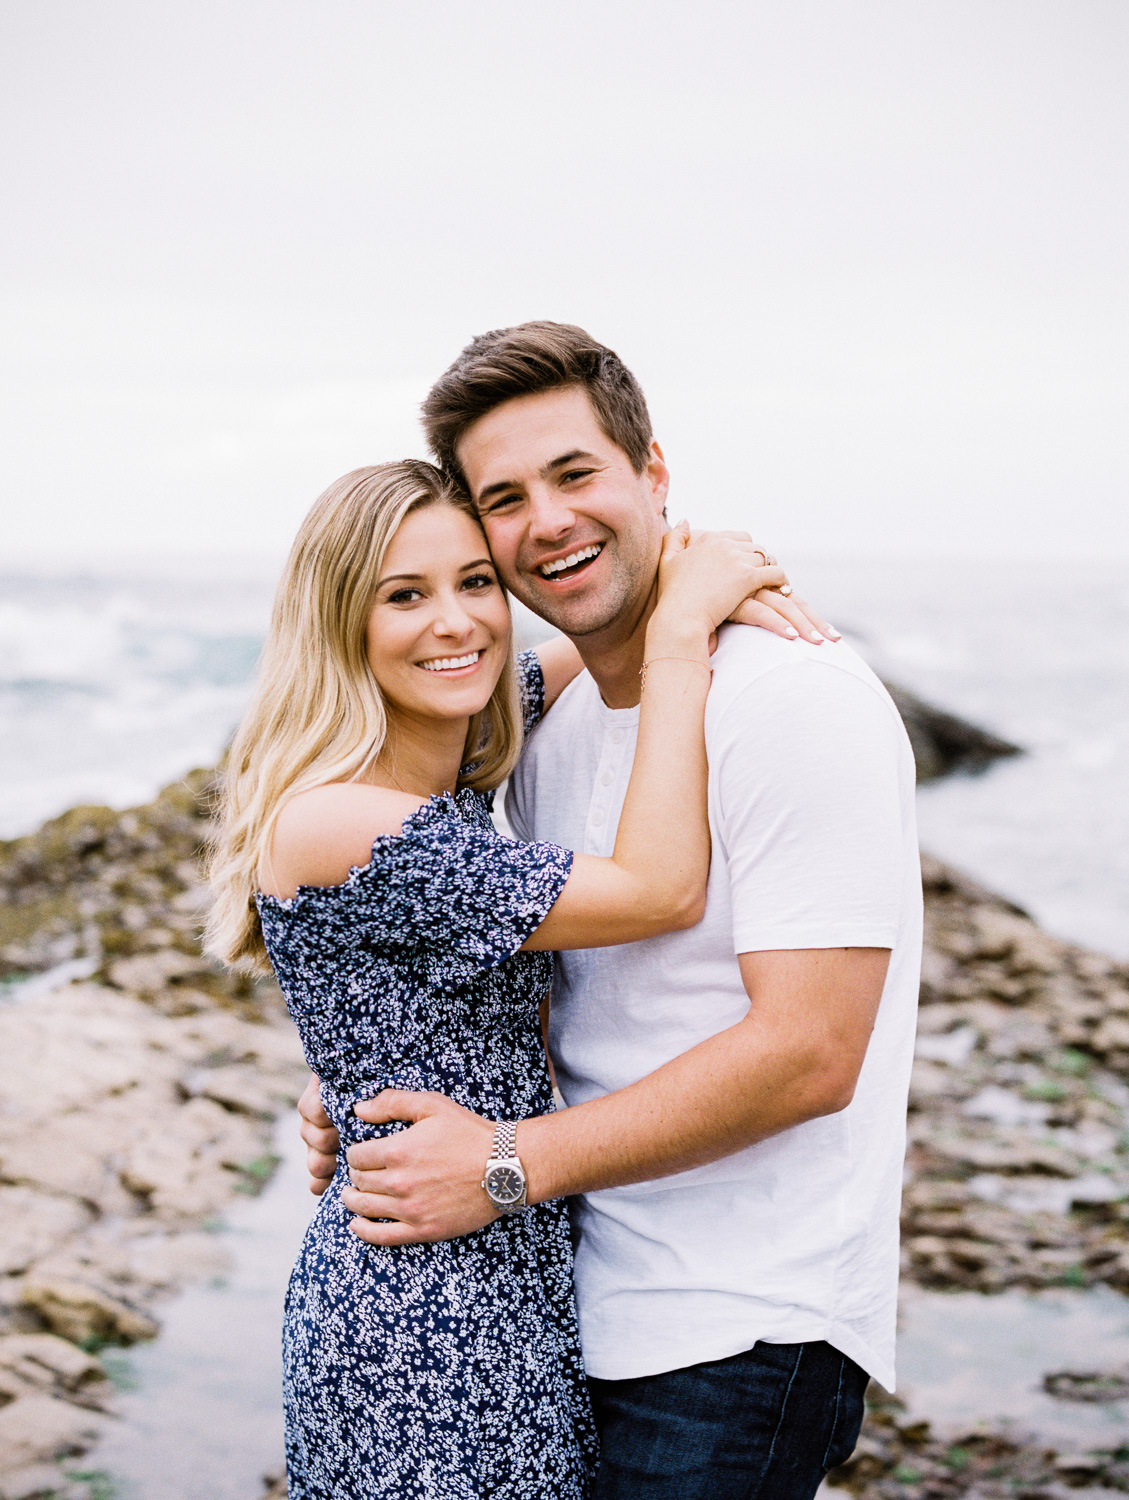 Ashley-Rae-Studio-San-Luis-Obispo-Engagement-Session-Santa-Barbara-Wedding-Photographer-157.jpg